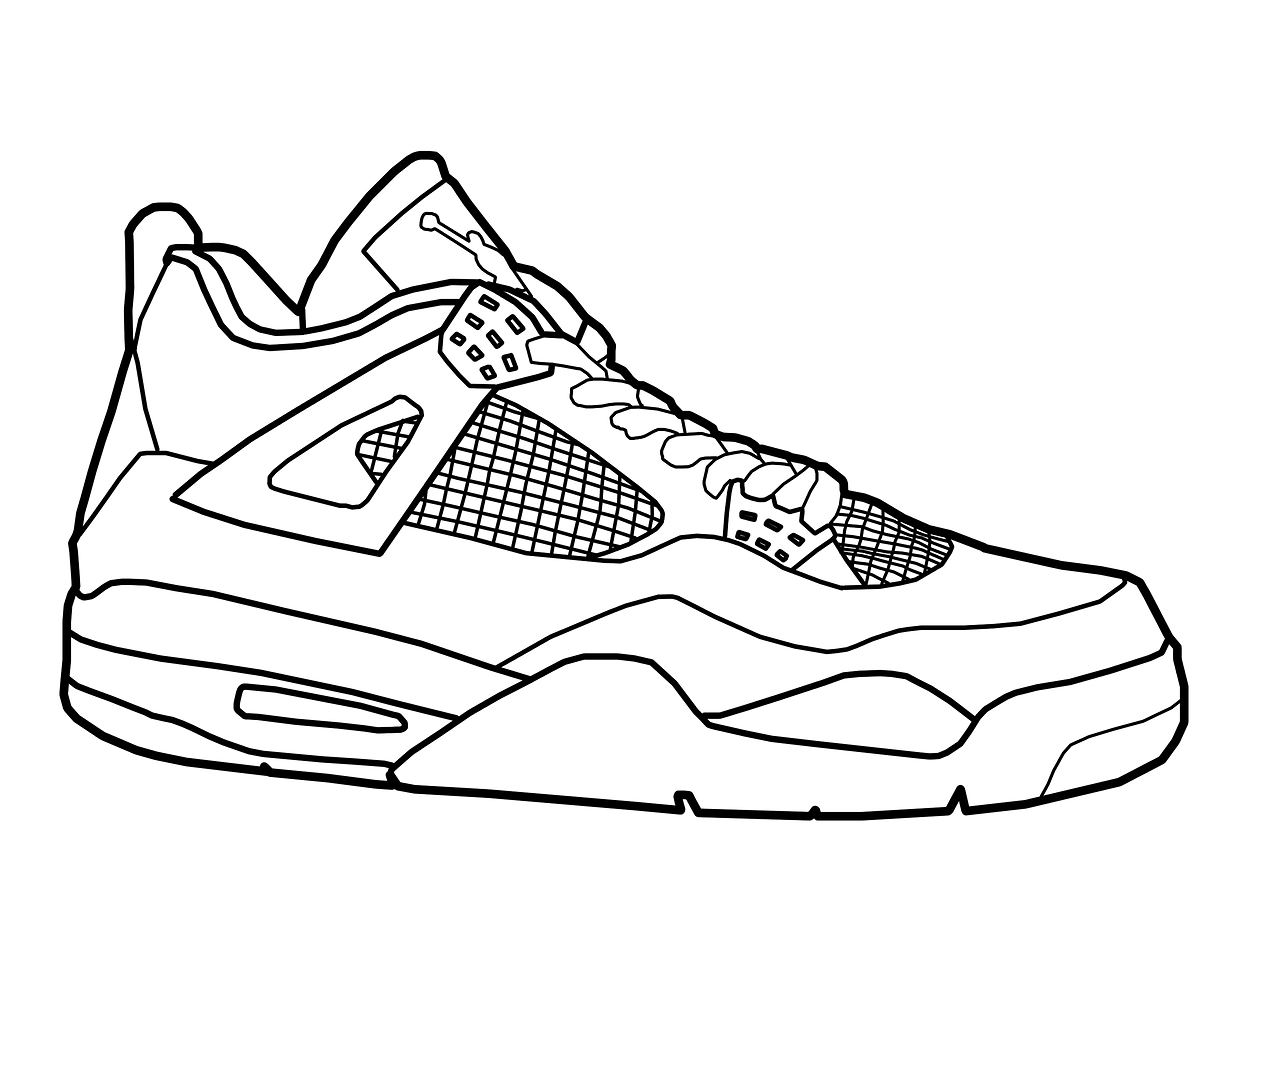 images of shoes to color clothes coloring pages surfnetkids of images shoes color to